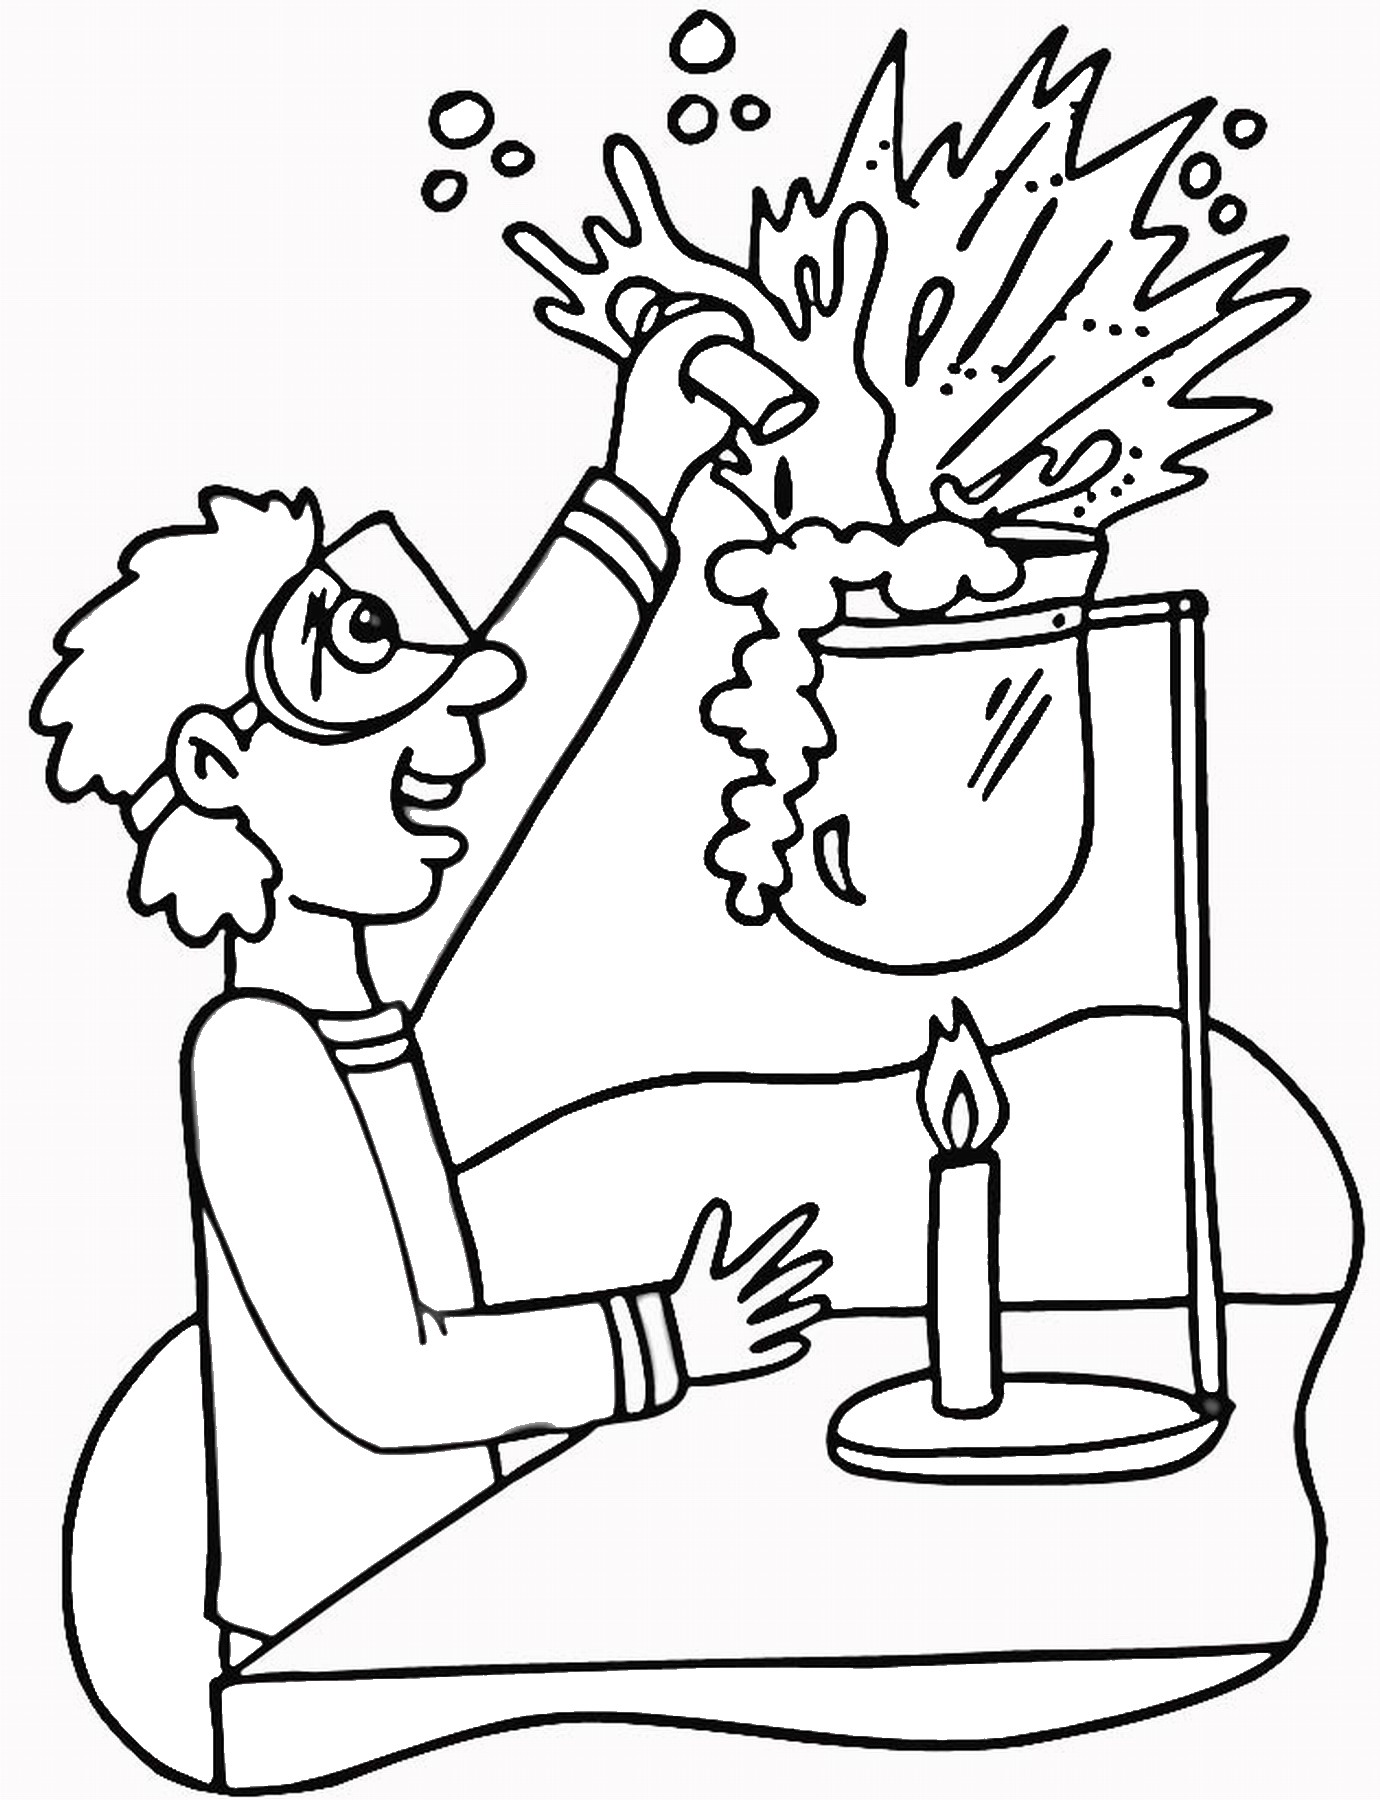 science printable coloring pages scientists kids environment kids health national science coloring pages printable